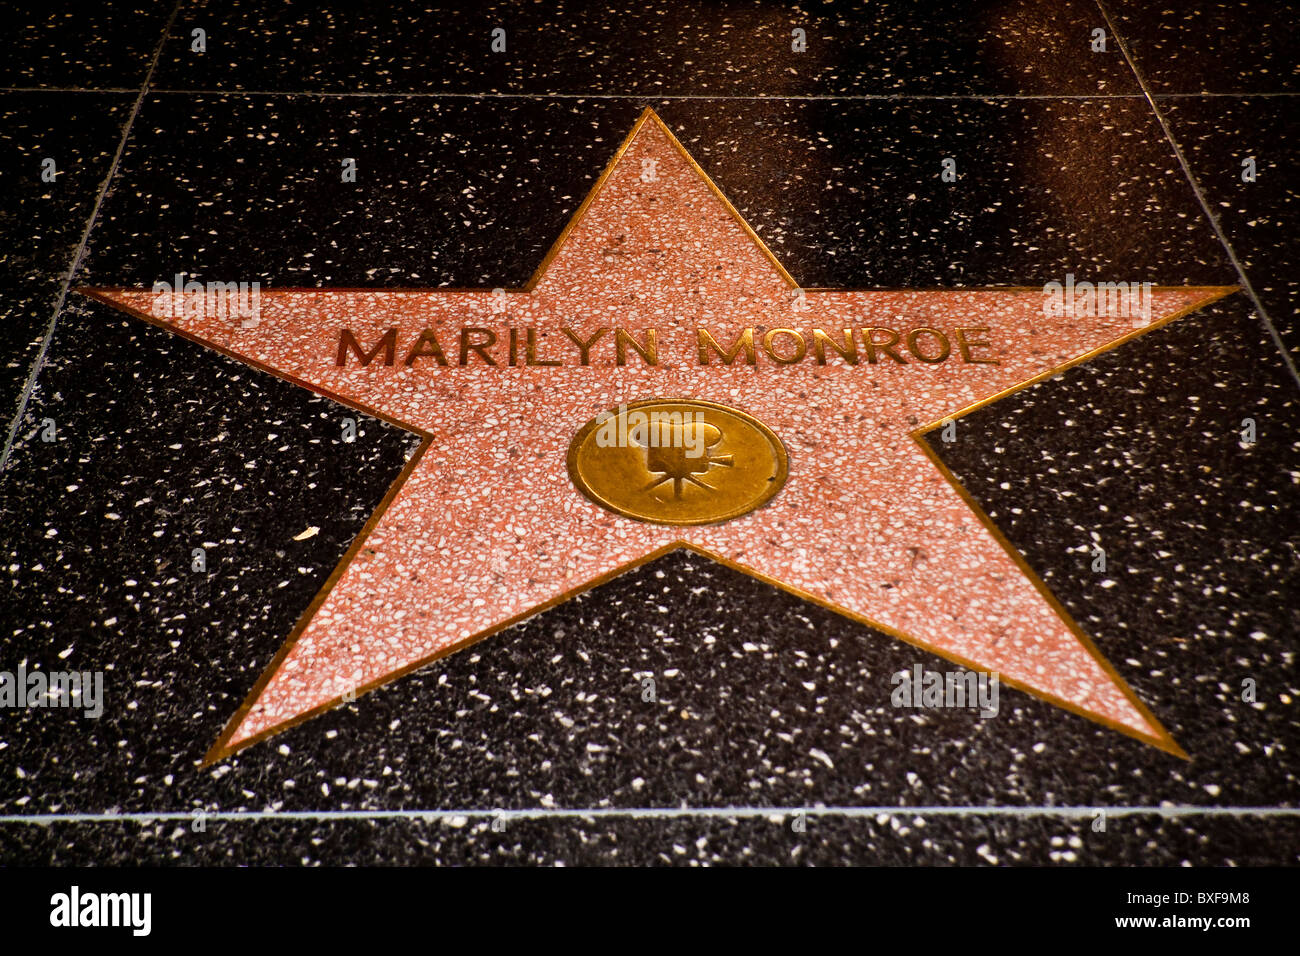 Hollywood Walk of Fame Star of Marilyn Monroe - Stock Image